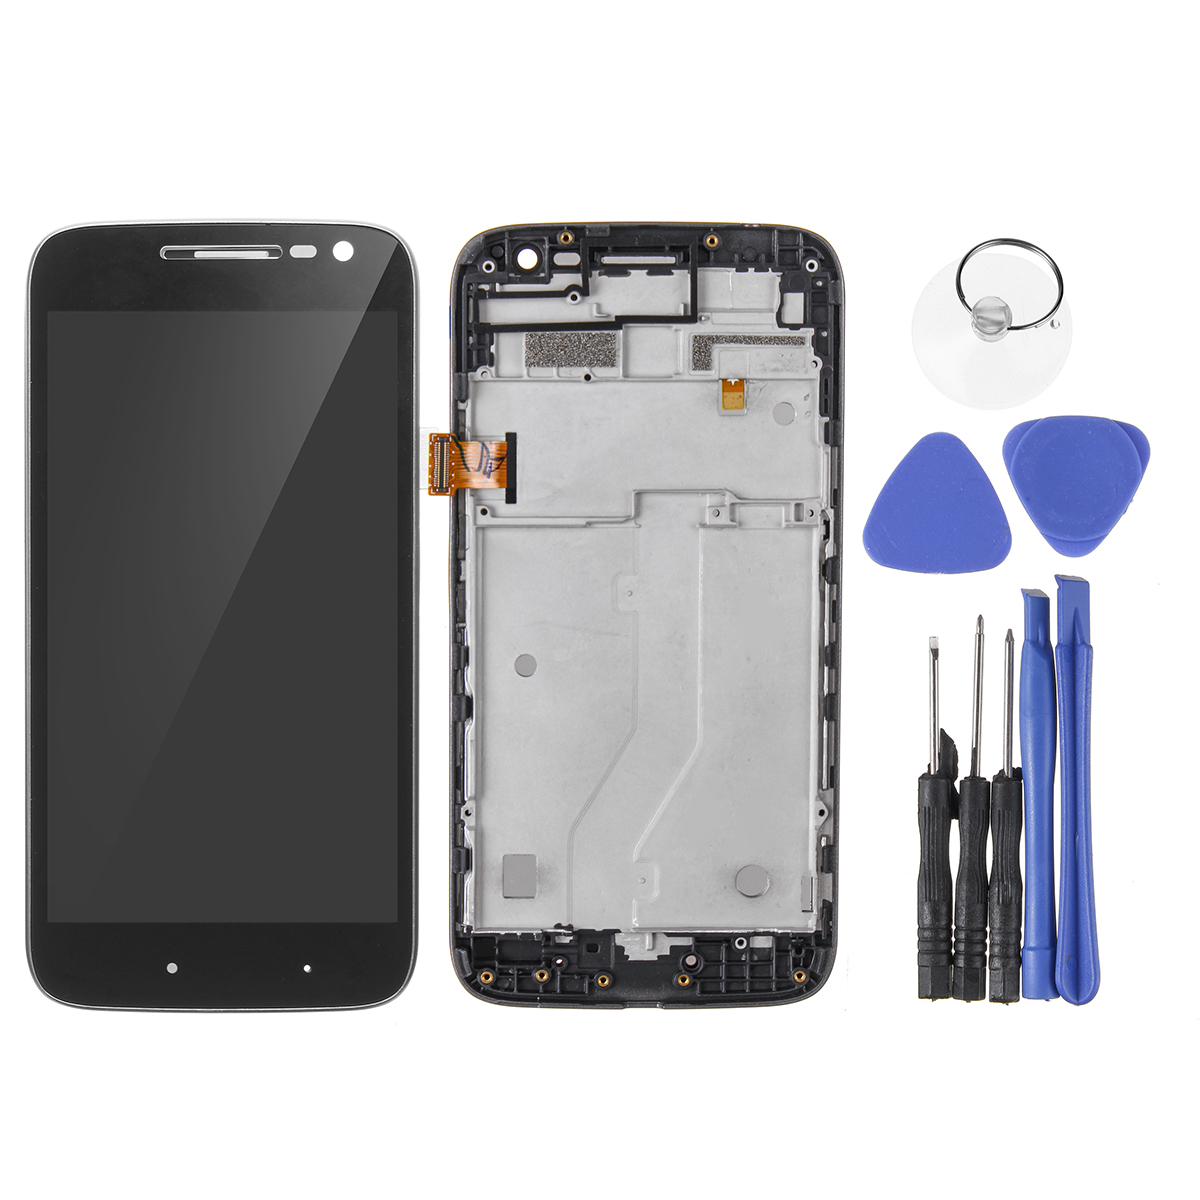 LCD Display + Touch Screen Digitizer Replacement With Repair Tools For Motorola Moto G4 Play XT1607 XT1601 XT1609